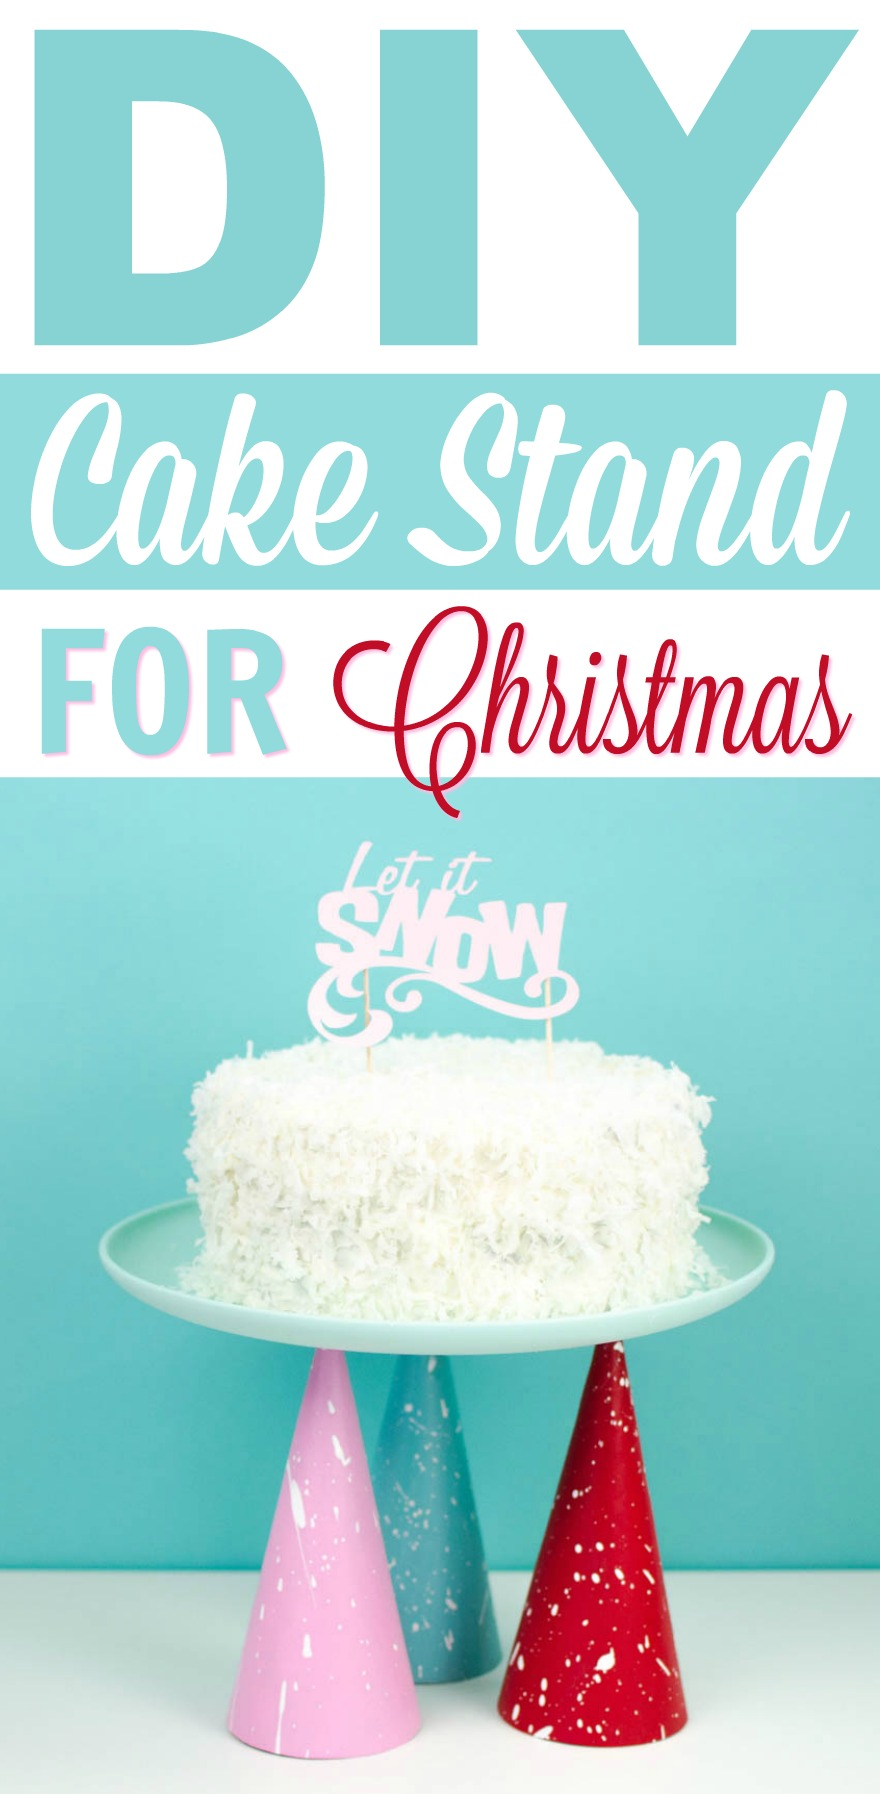 11 30 Diy Cake Stand For Christmas